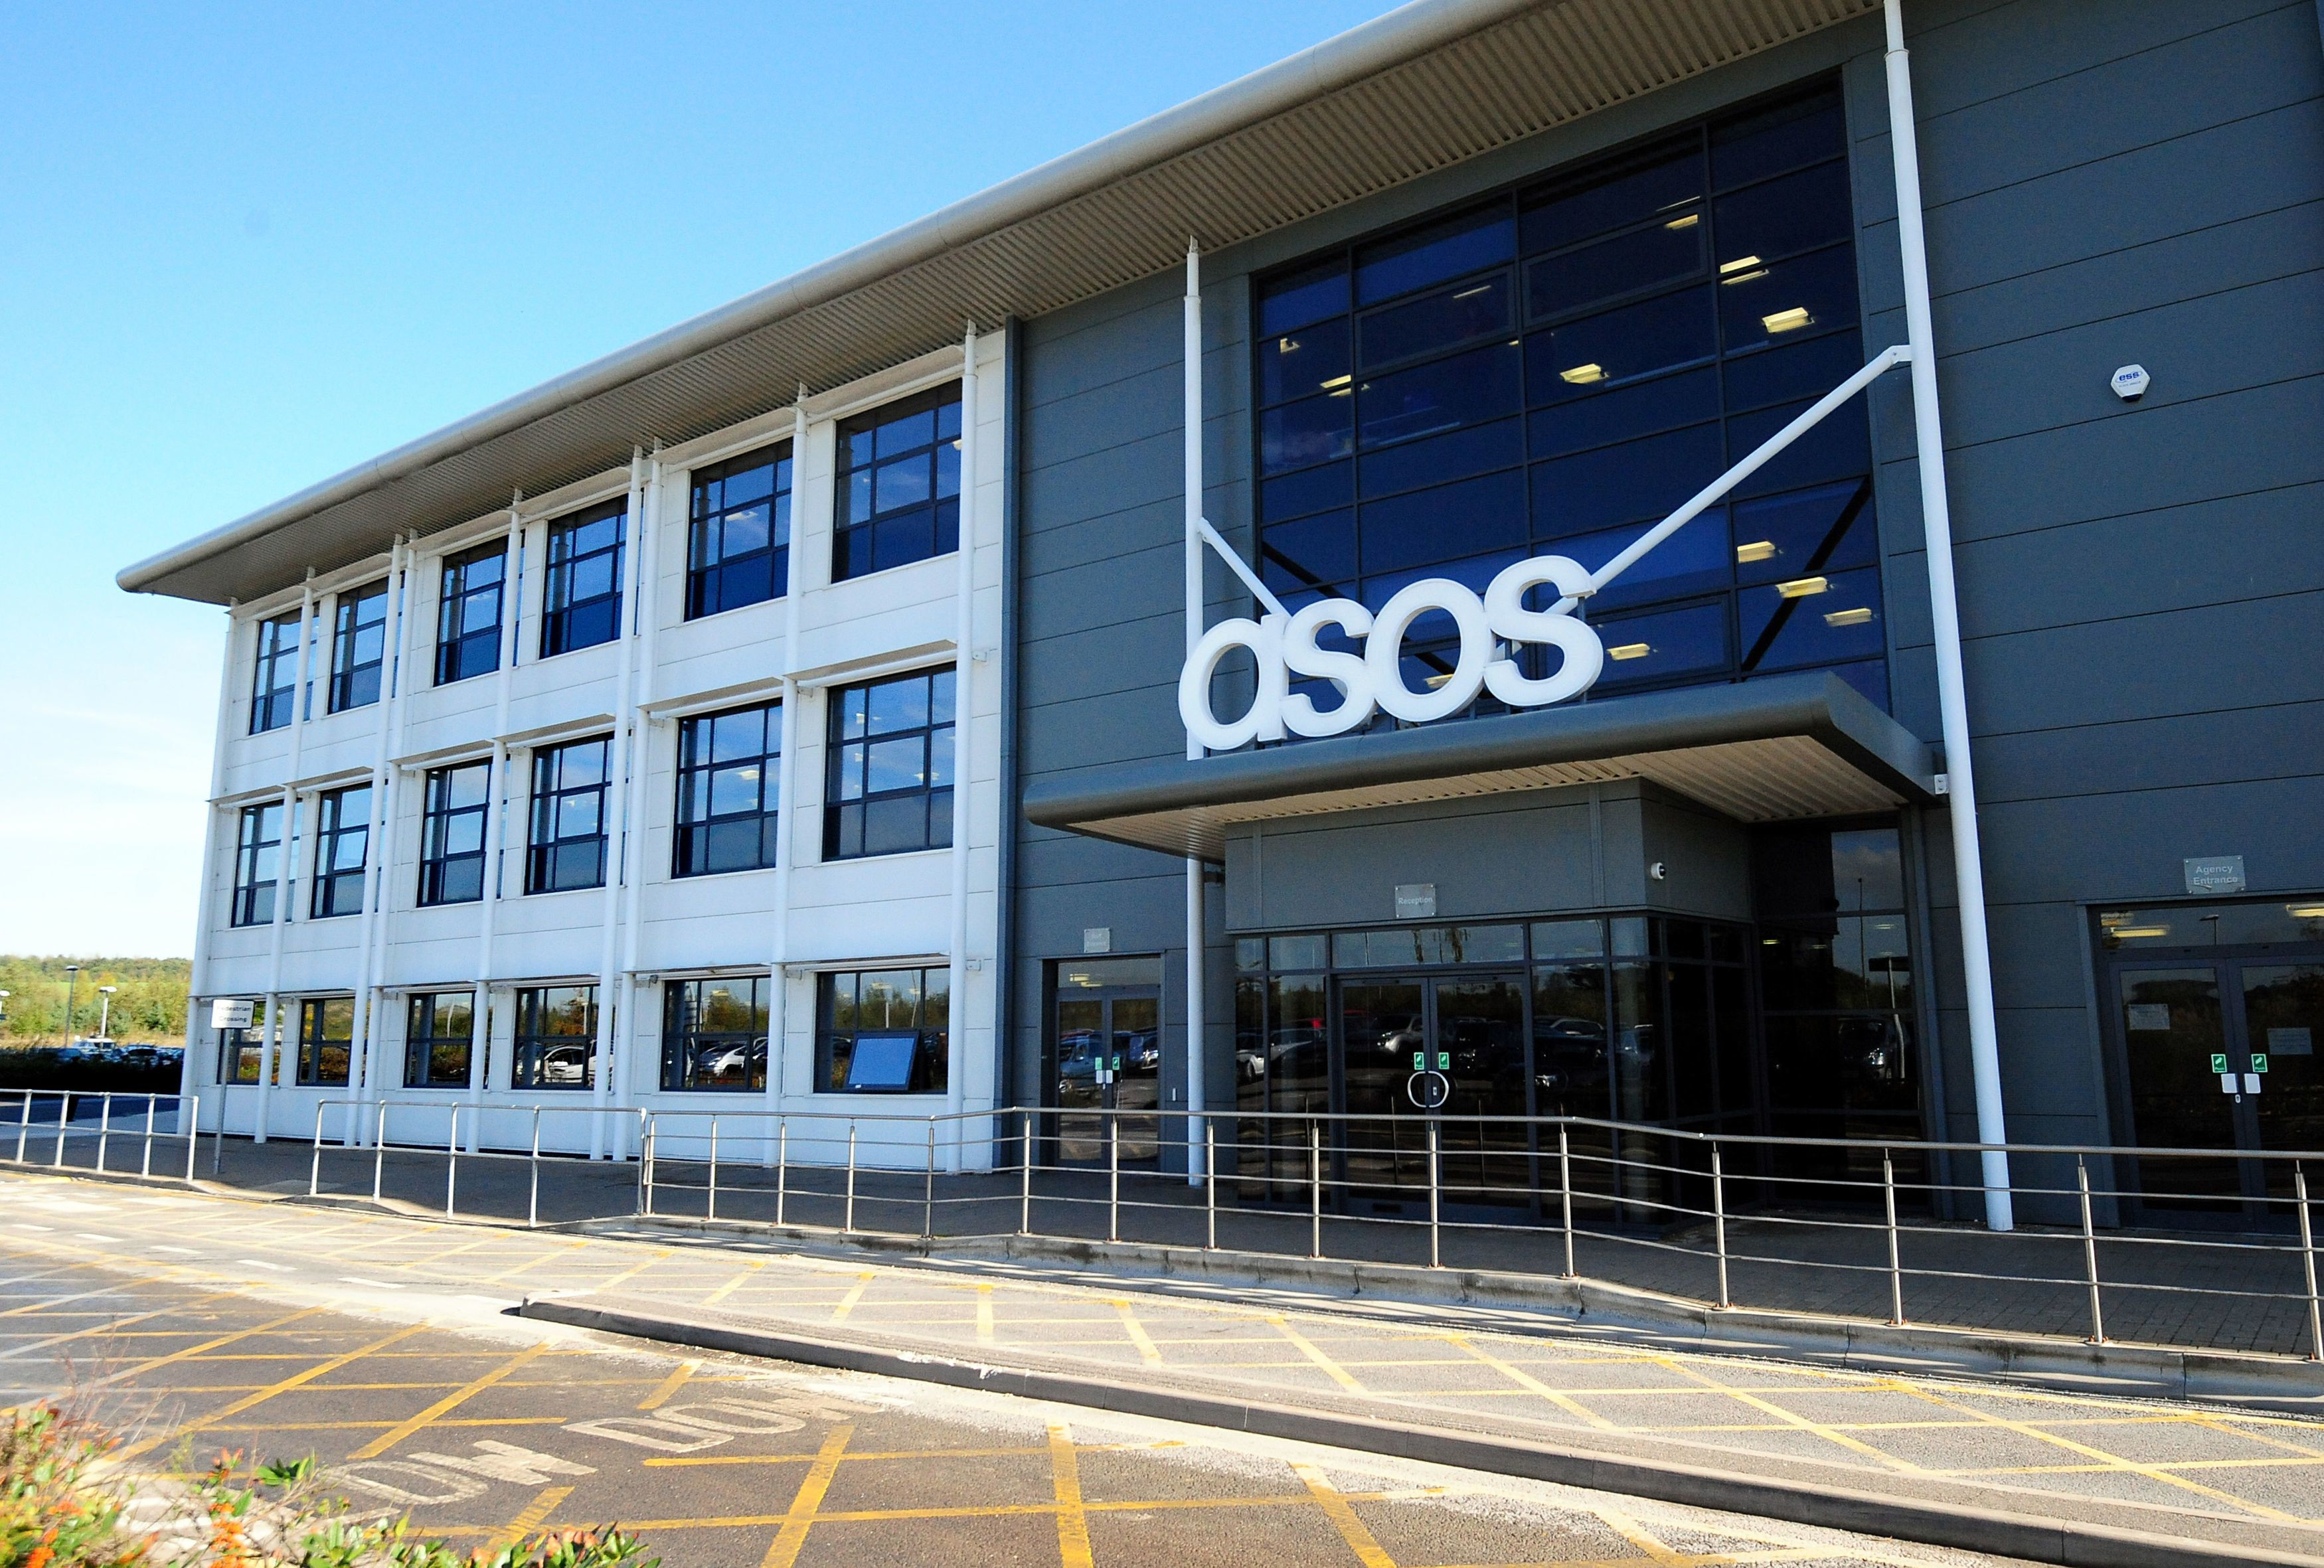 Asos warning increases fears for high street